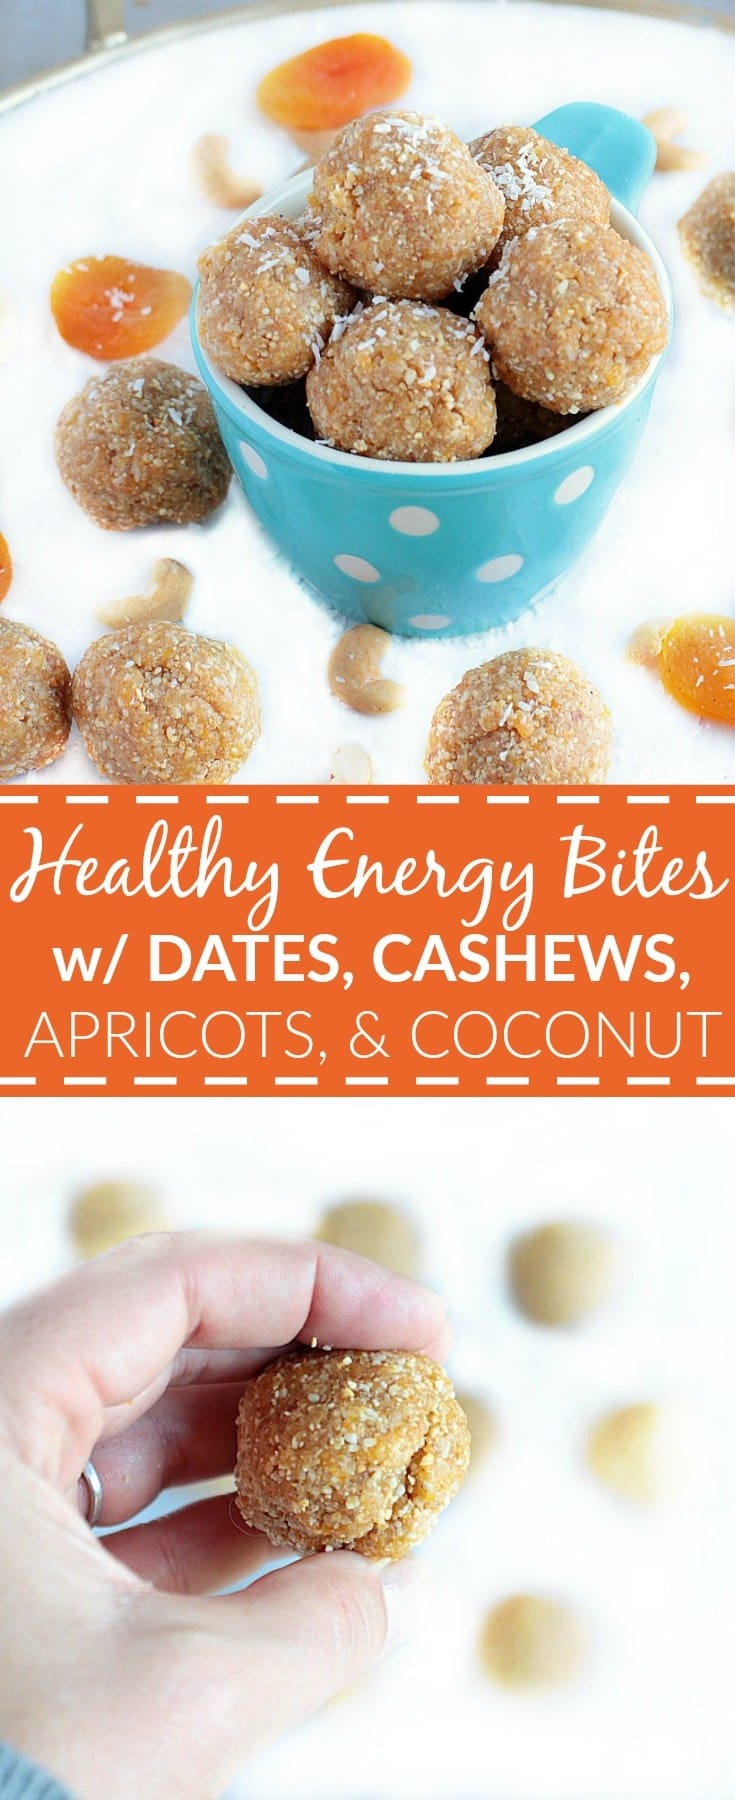 Whip up a batch of these delicious, No Bake Healthy Energy Bites w/ Dates, Cashews, Apricots, & Coconut in 10 minutes flat! #GlutenFree #Paleo #Vegan